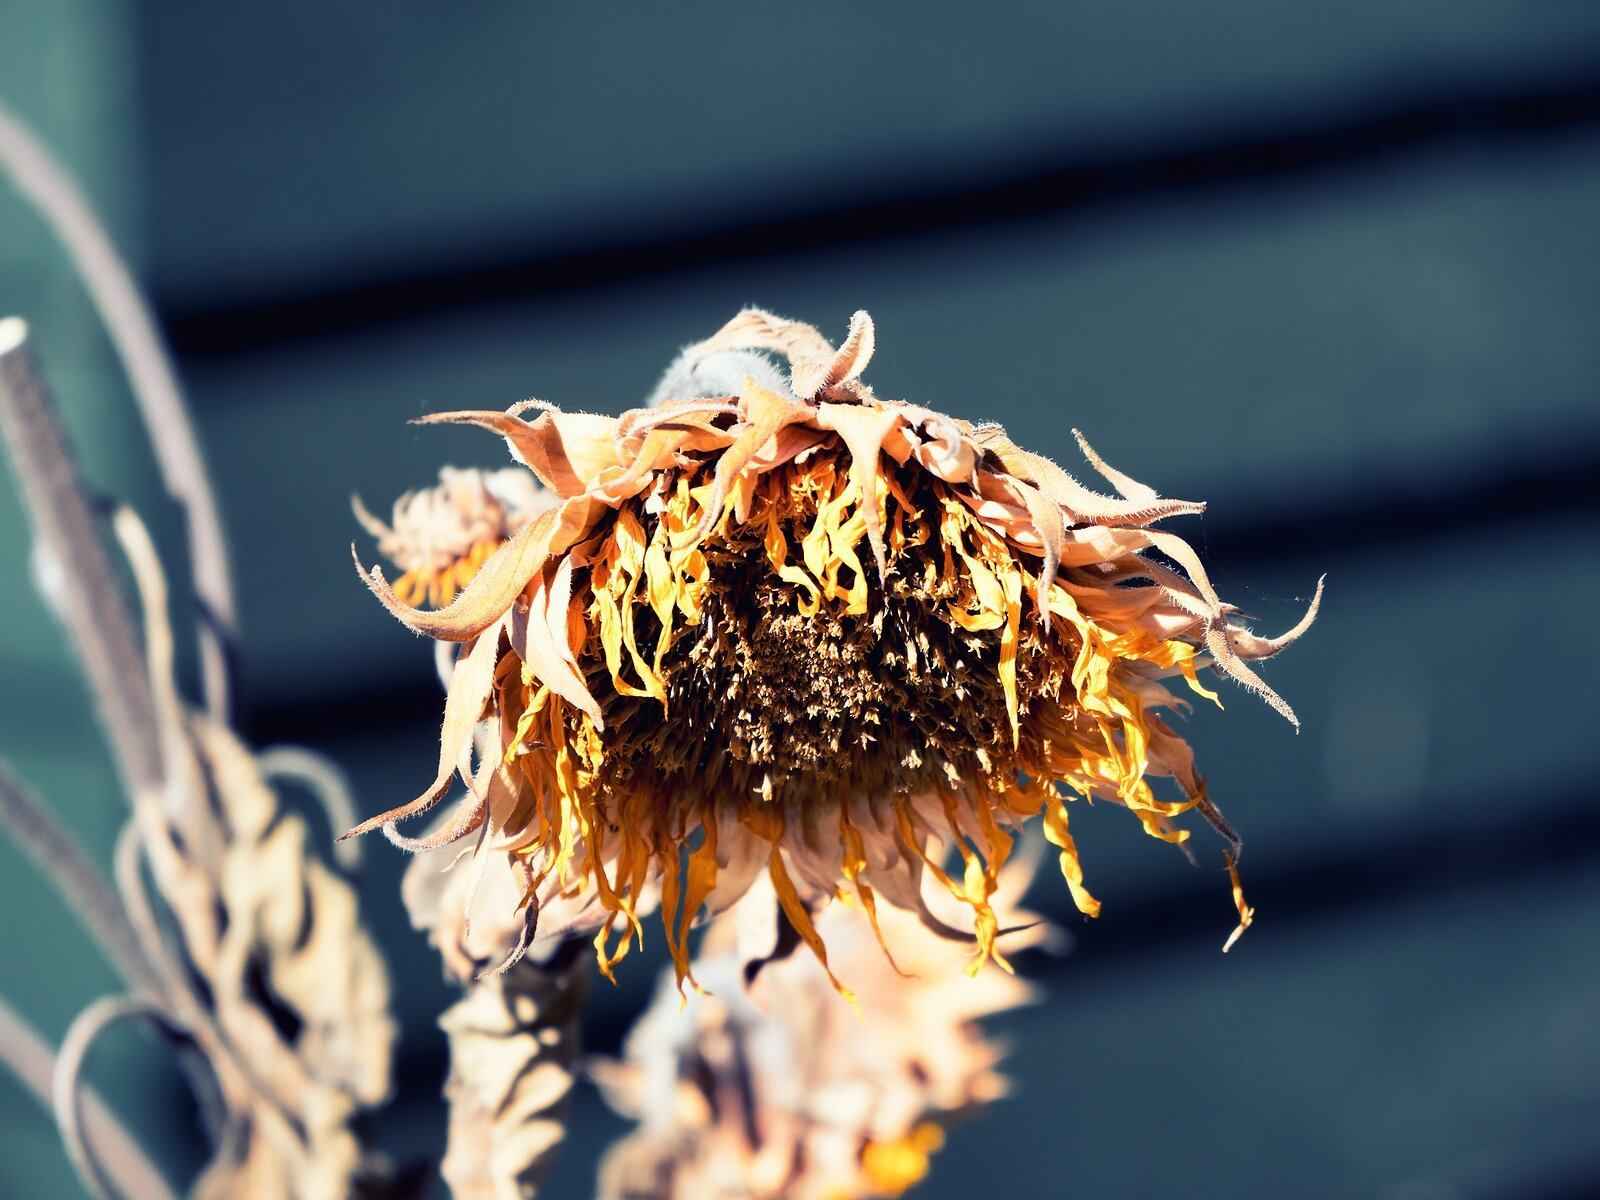 GX8_Oct15_dead_Sunflower.jpg